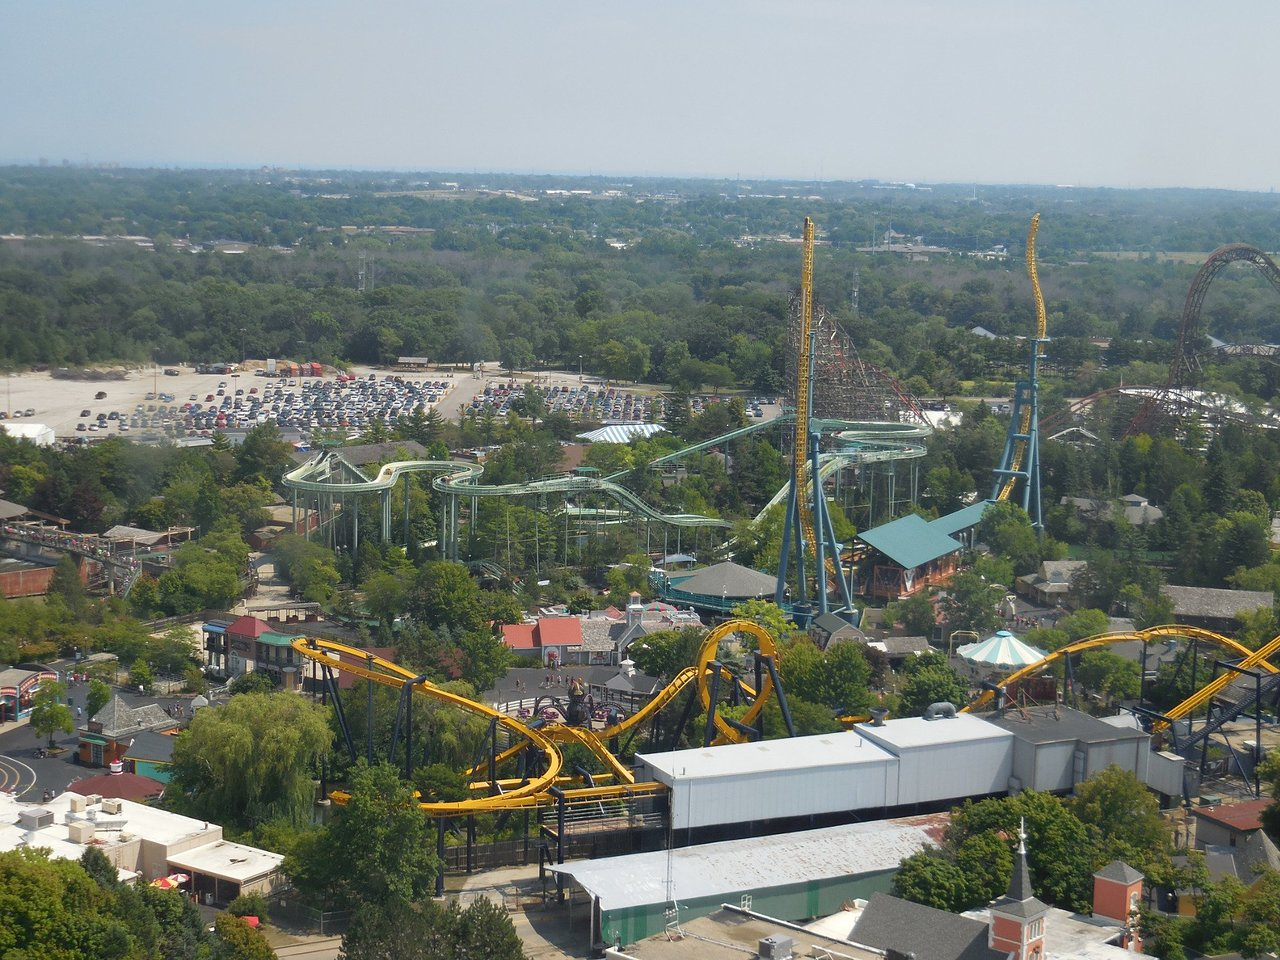 Six Flags Great America Gurnee 2020 All You Need To Know Before You Go With Photos Gurnee Il Tripadvisor